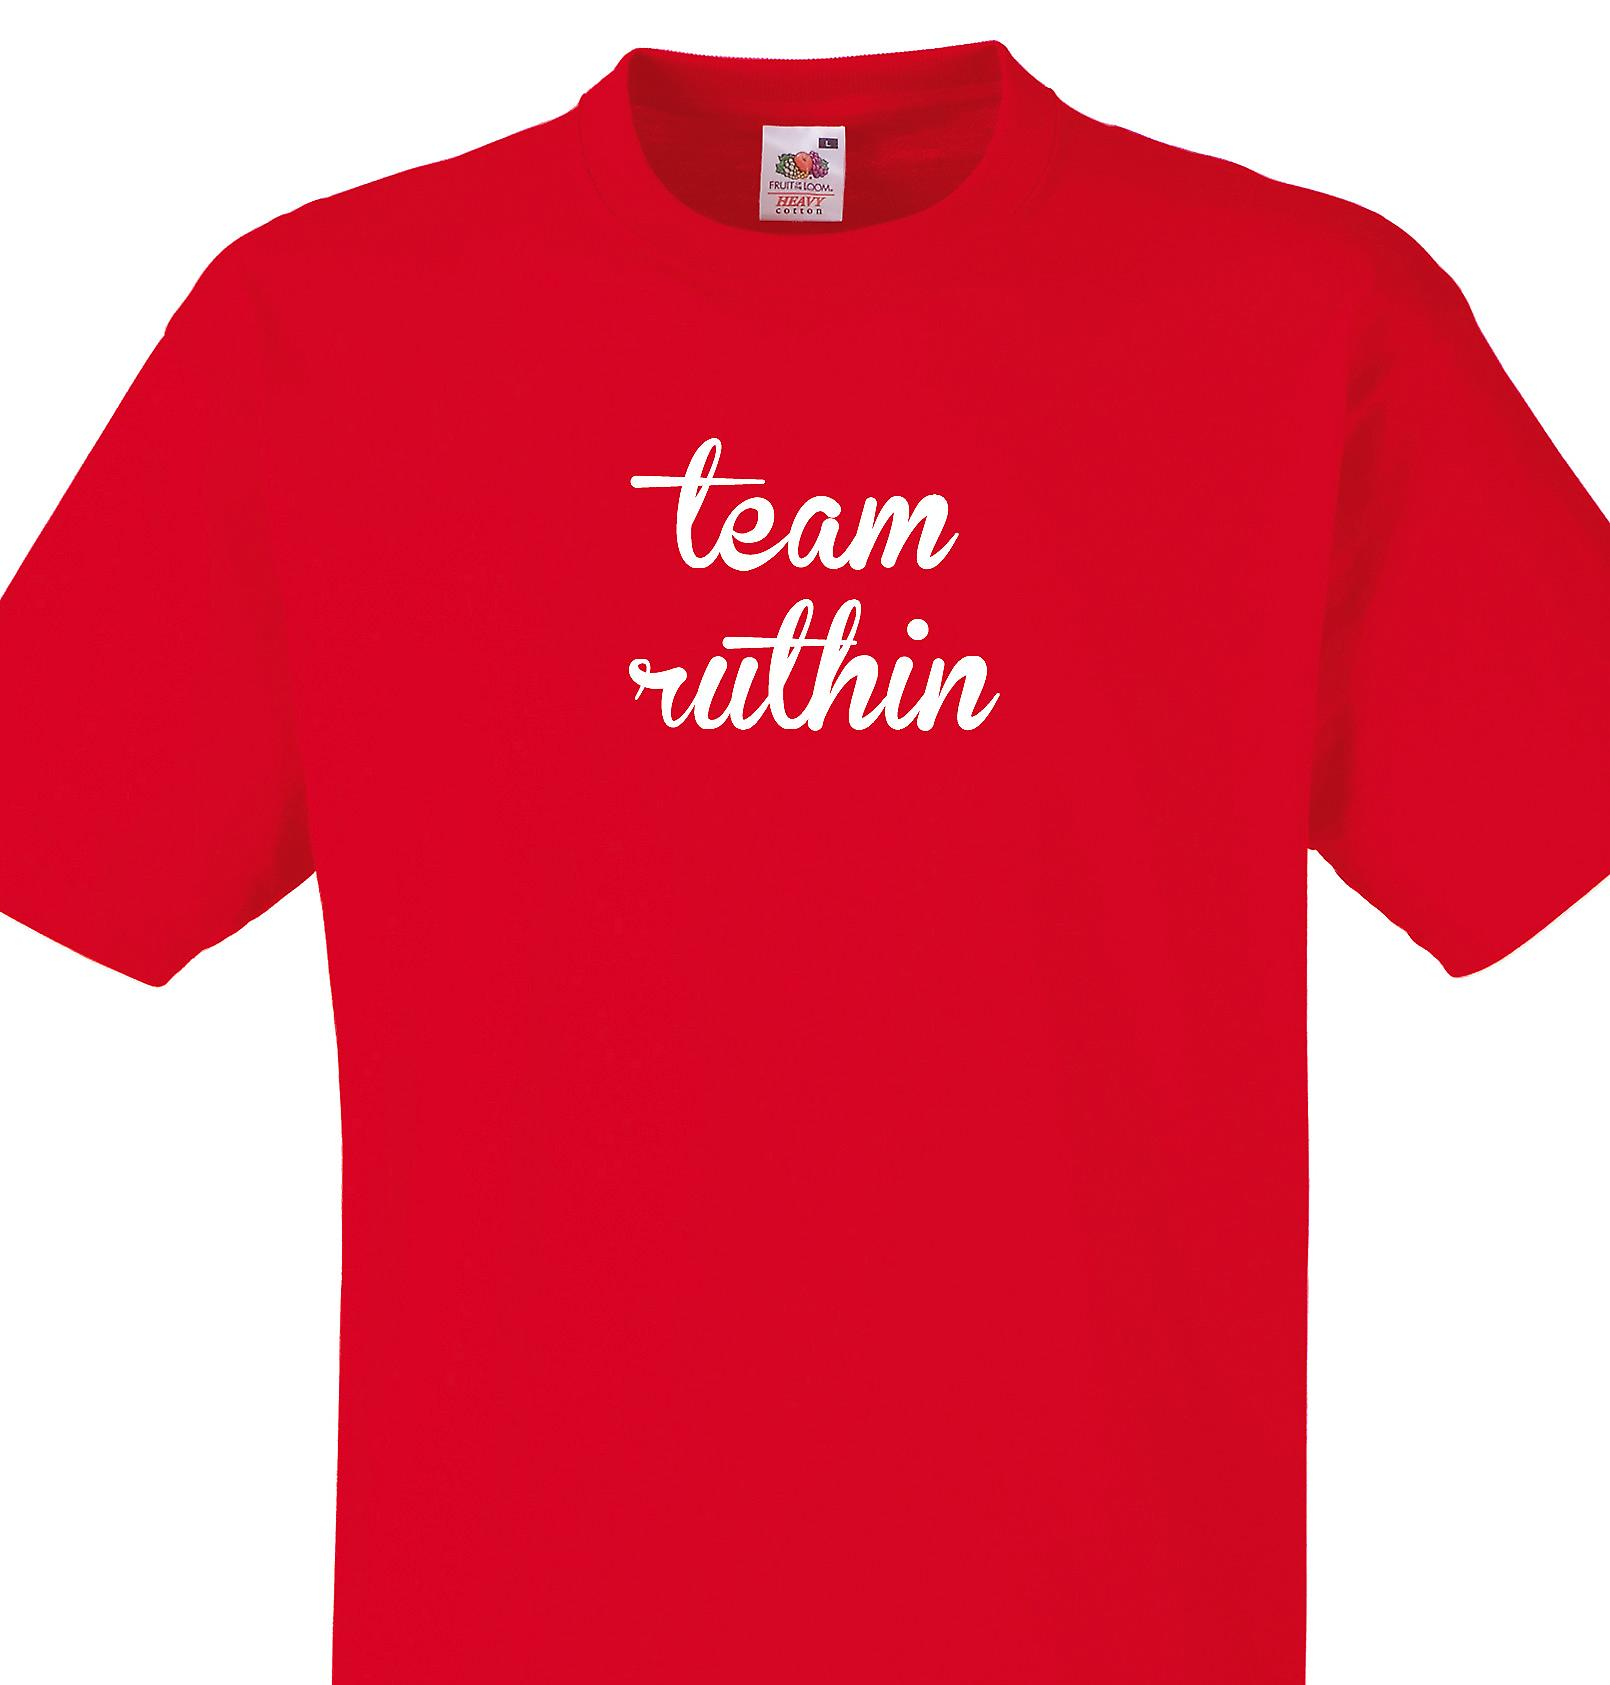 Team Ruthin Red T shirt